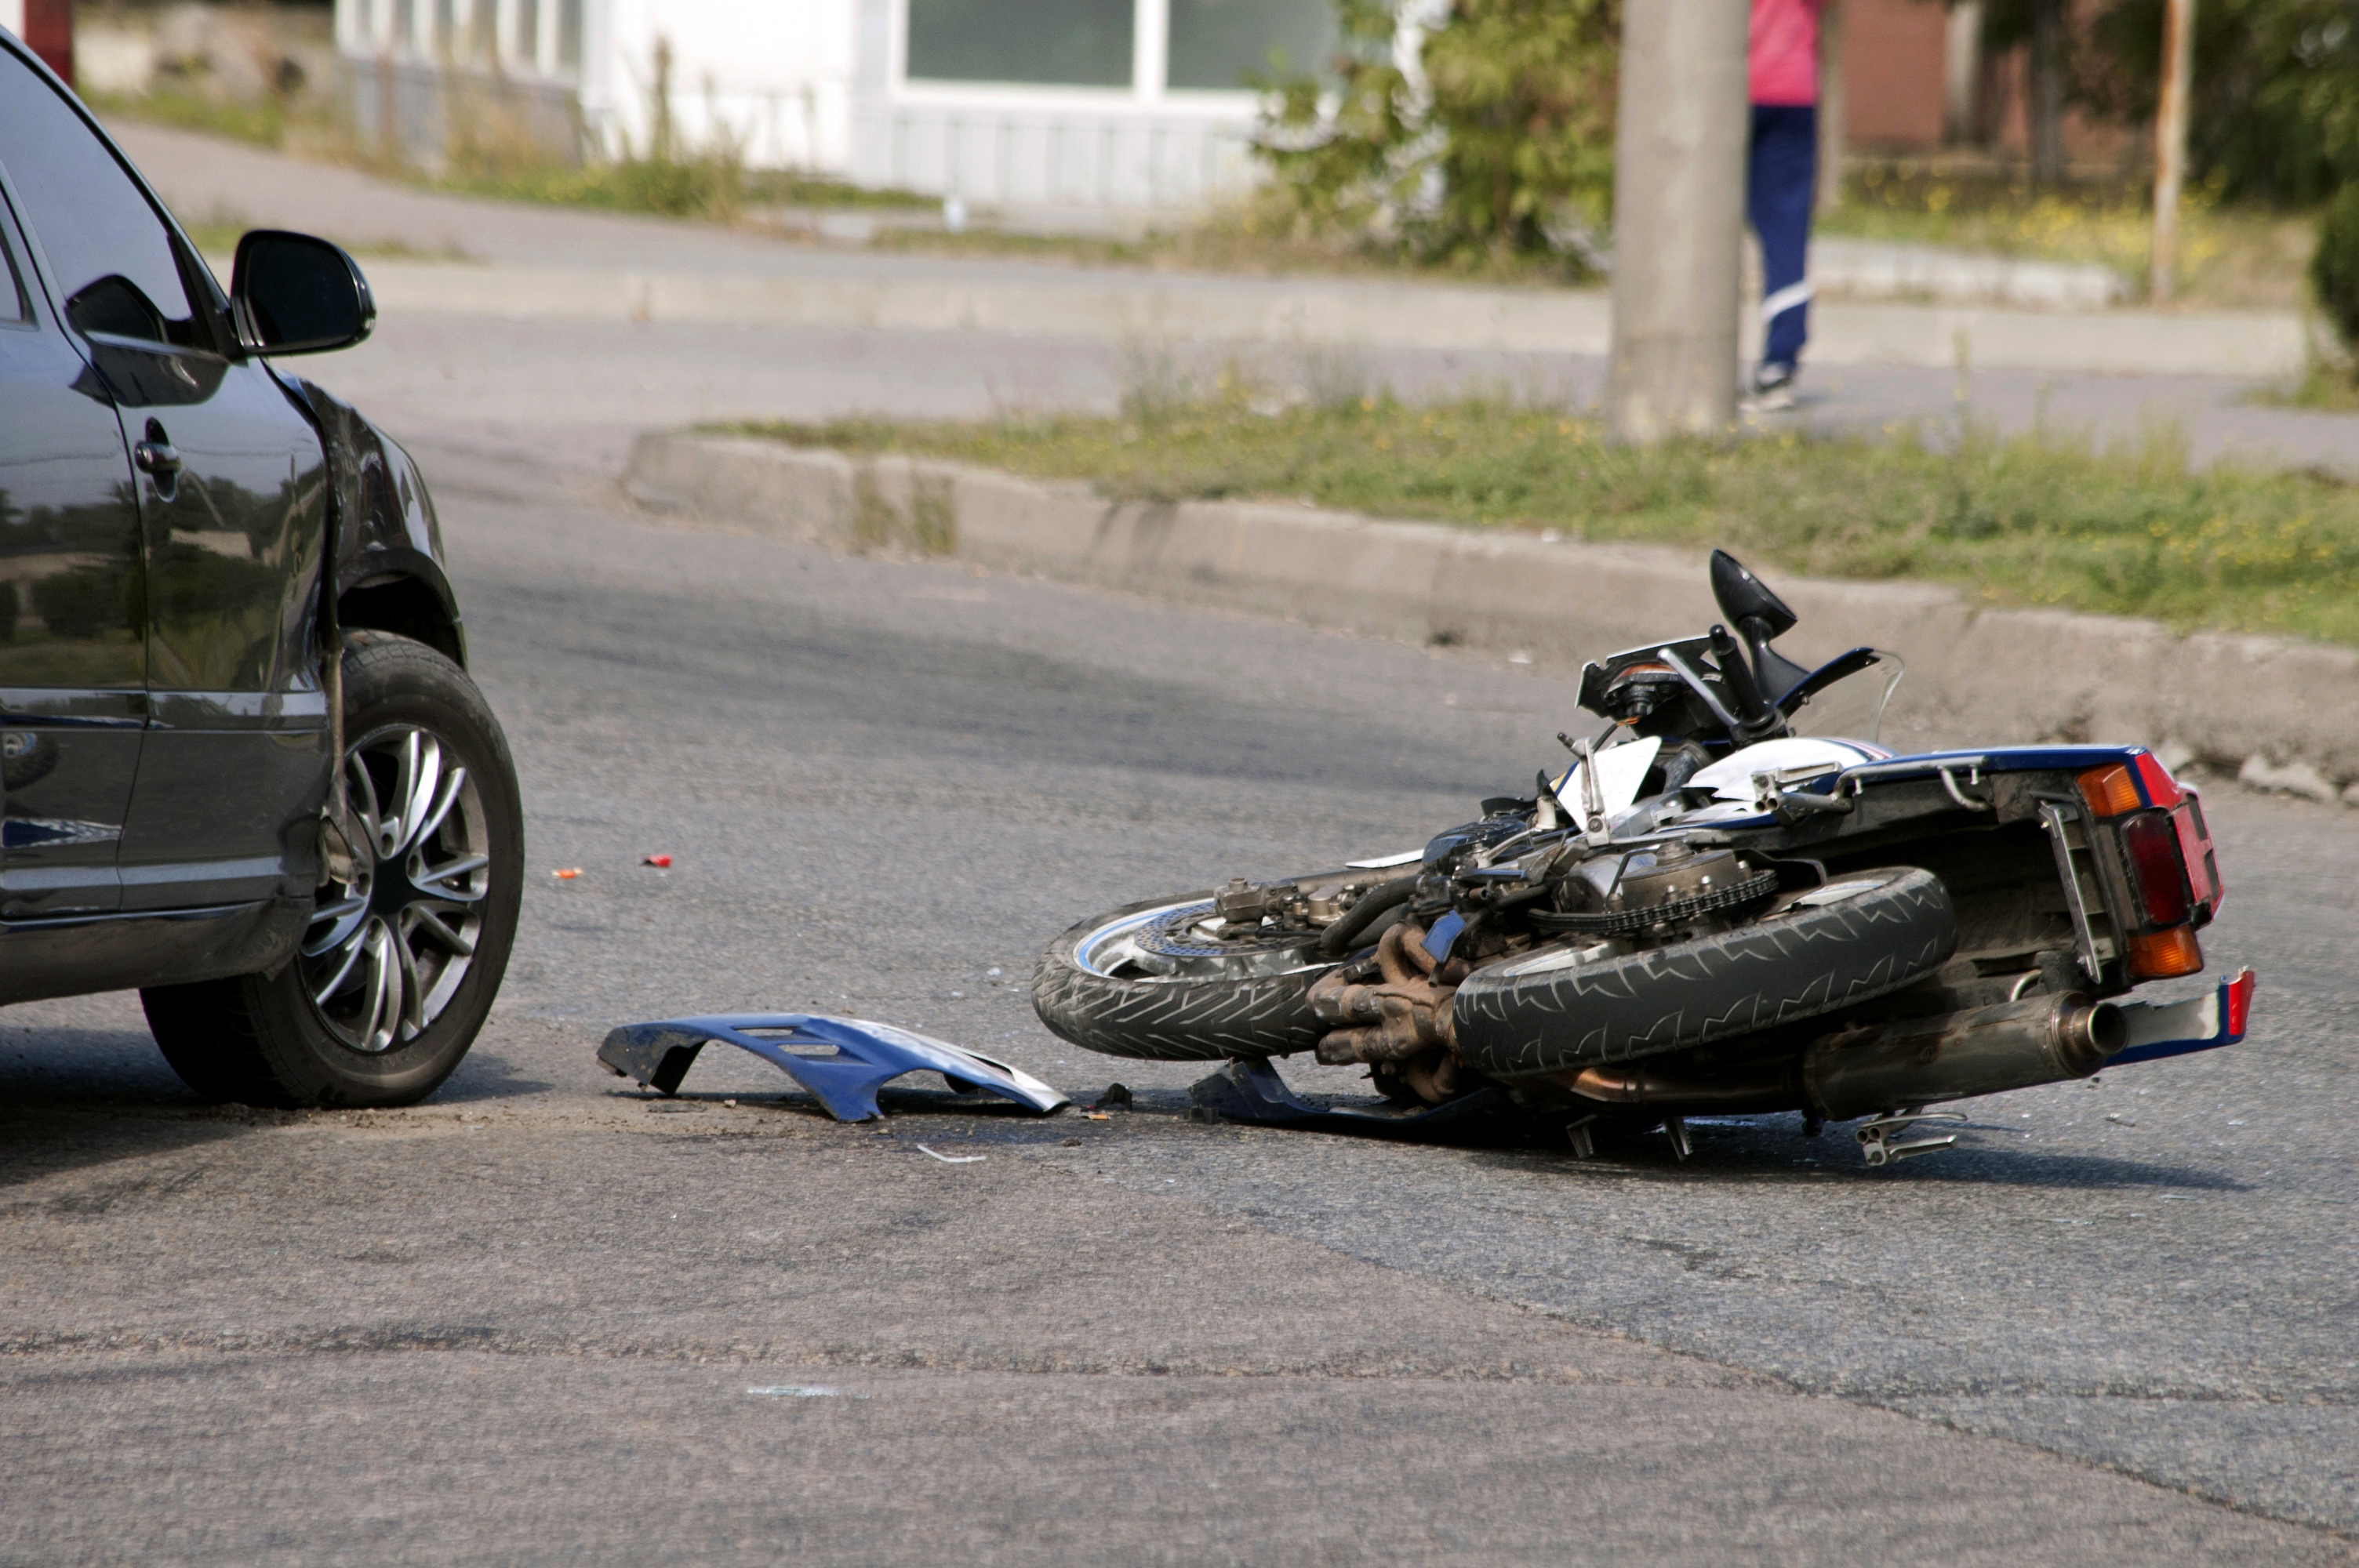 motorcycle accident injury lawyer union county nj